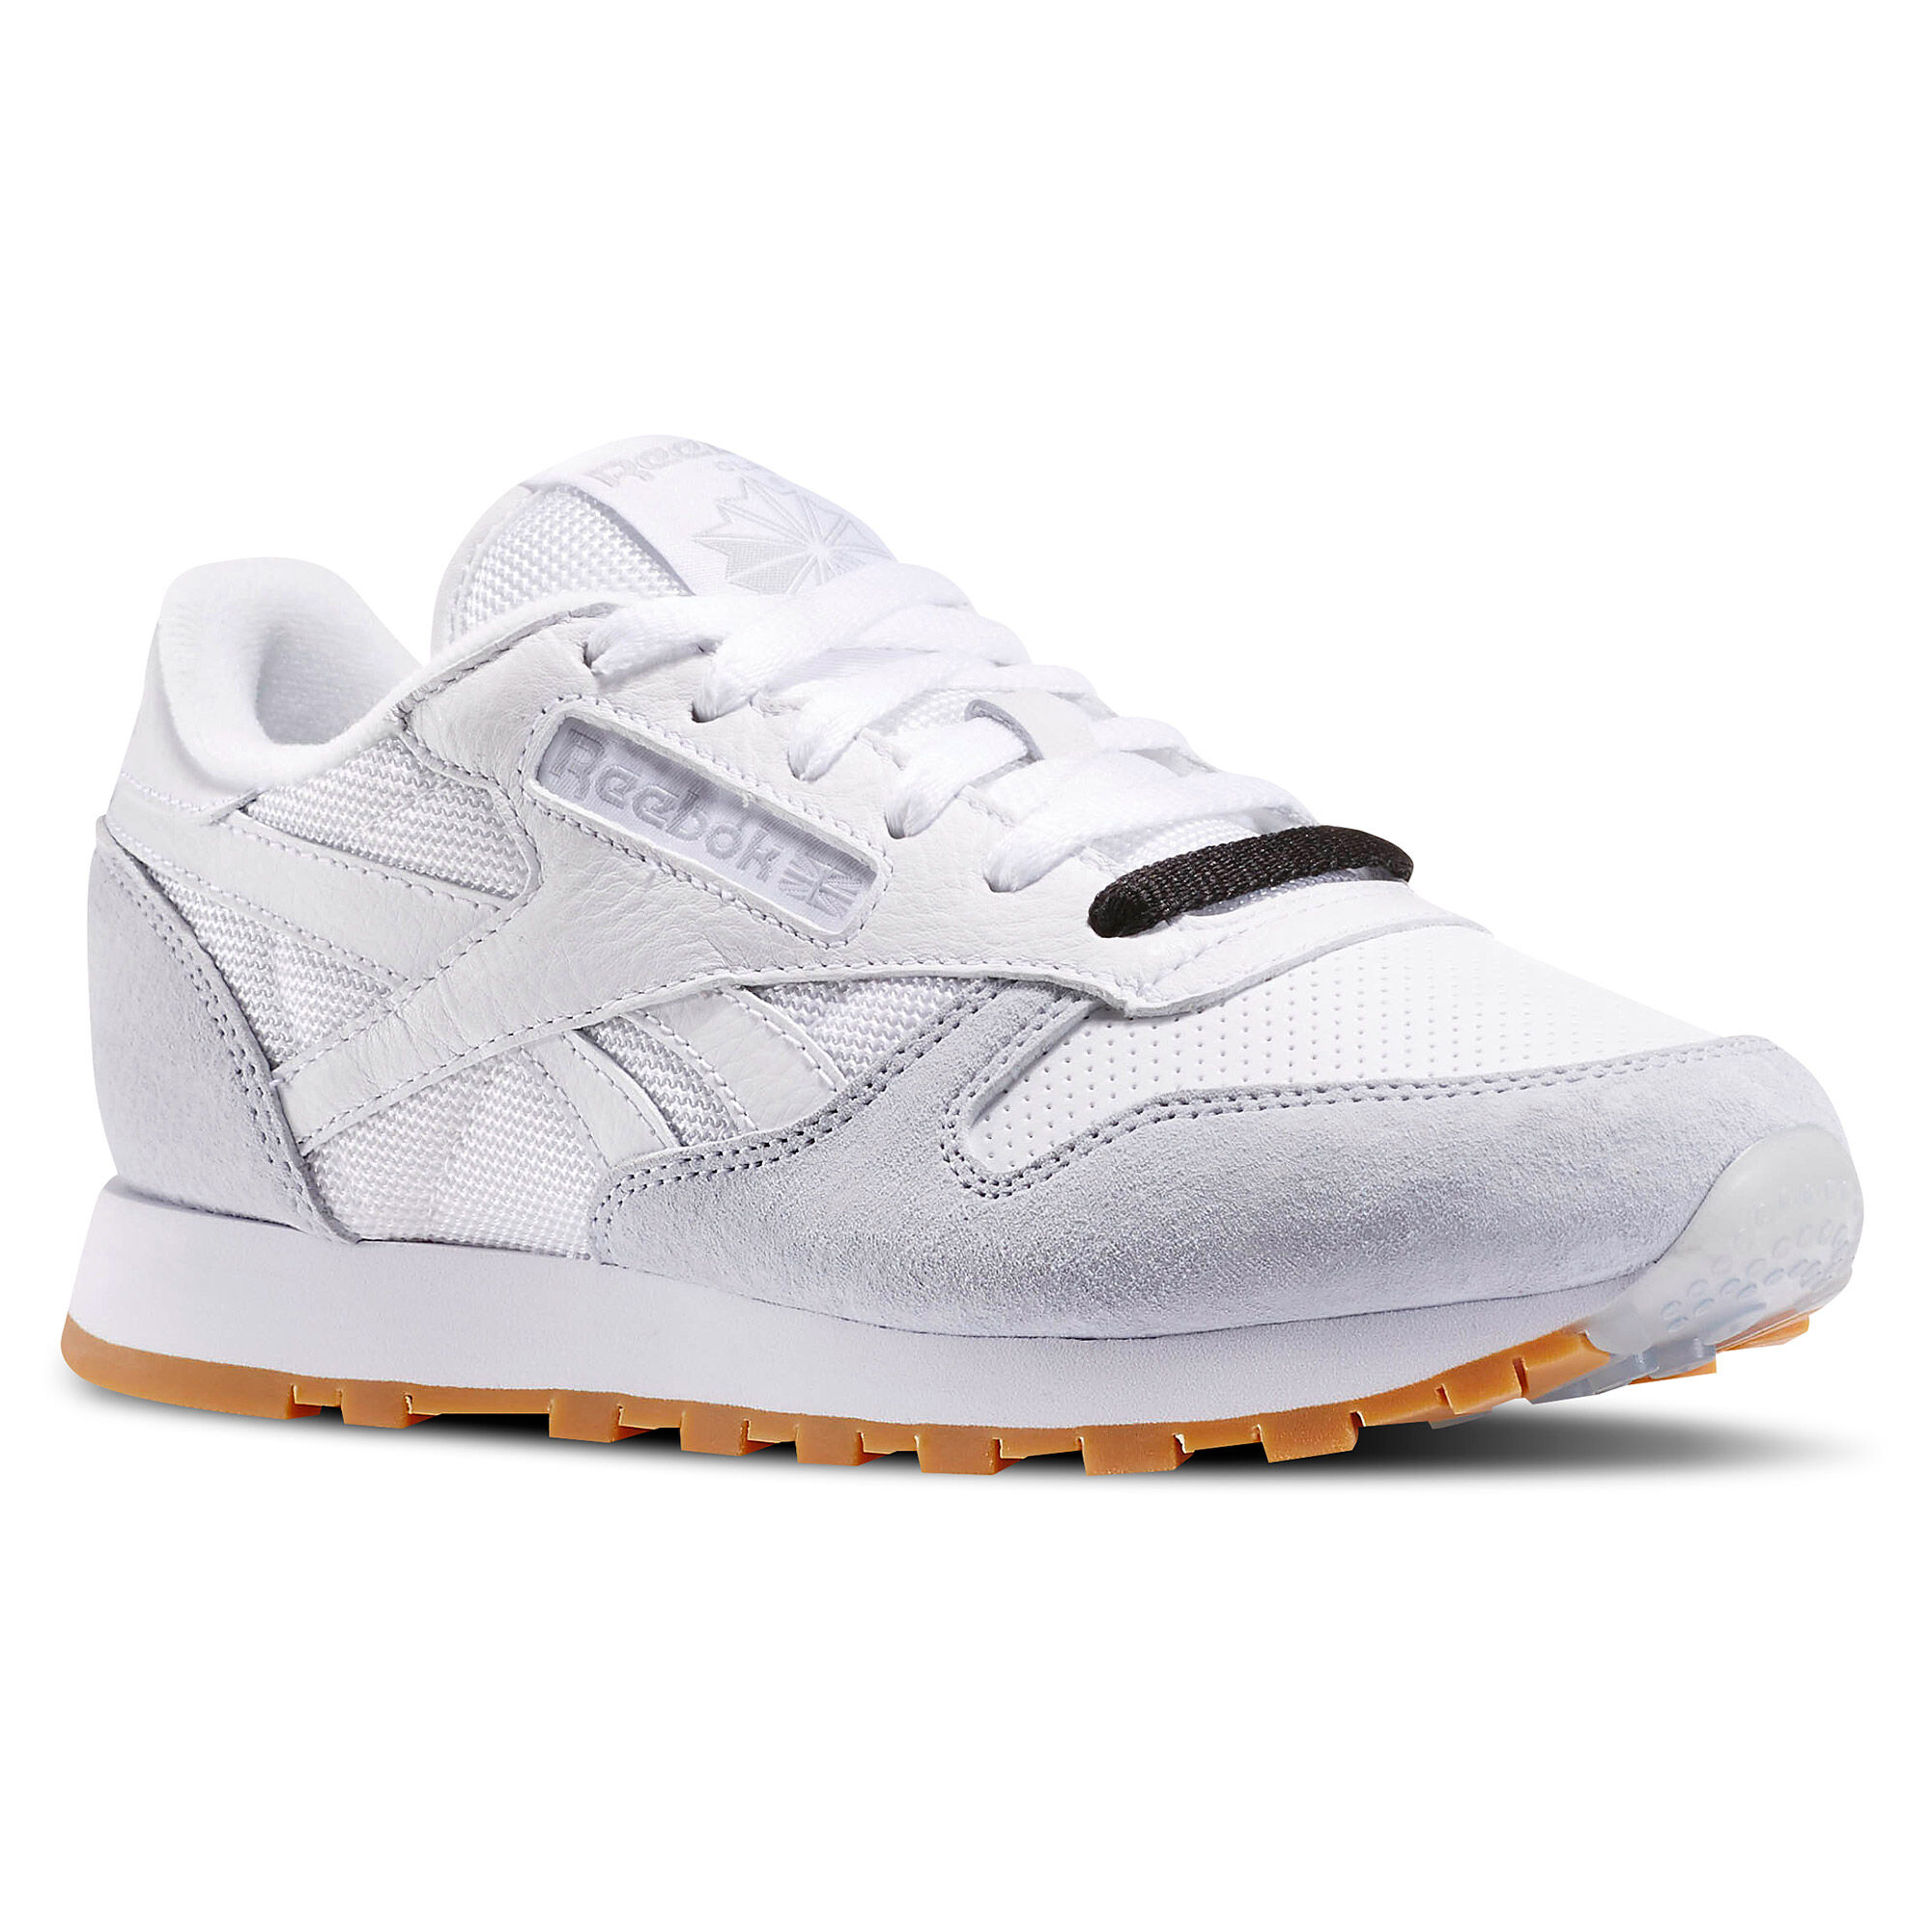 Reebok - Reebok Classic Leather Perfect Split White/Cloud Grey/Black AR2615